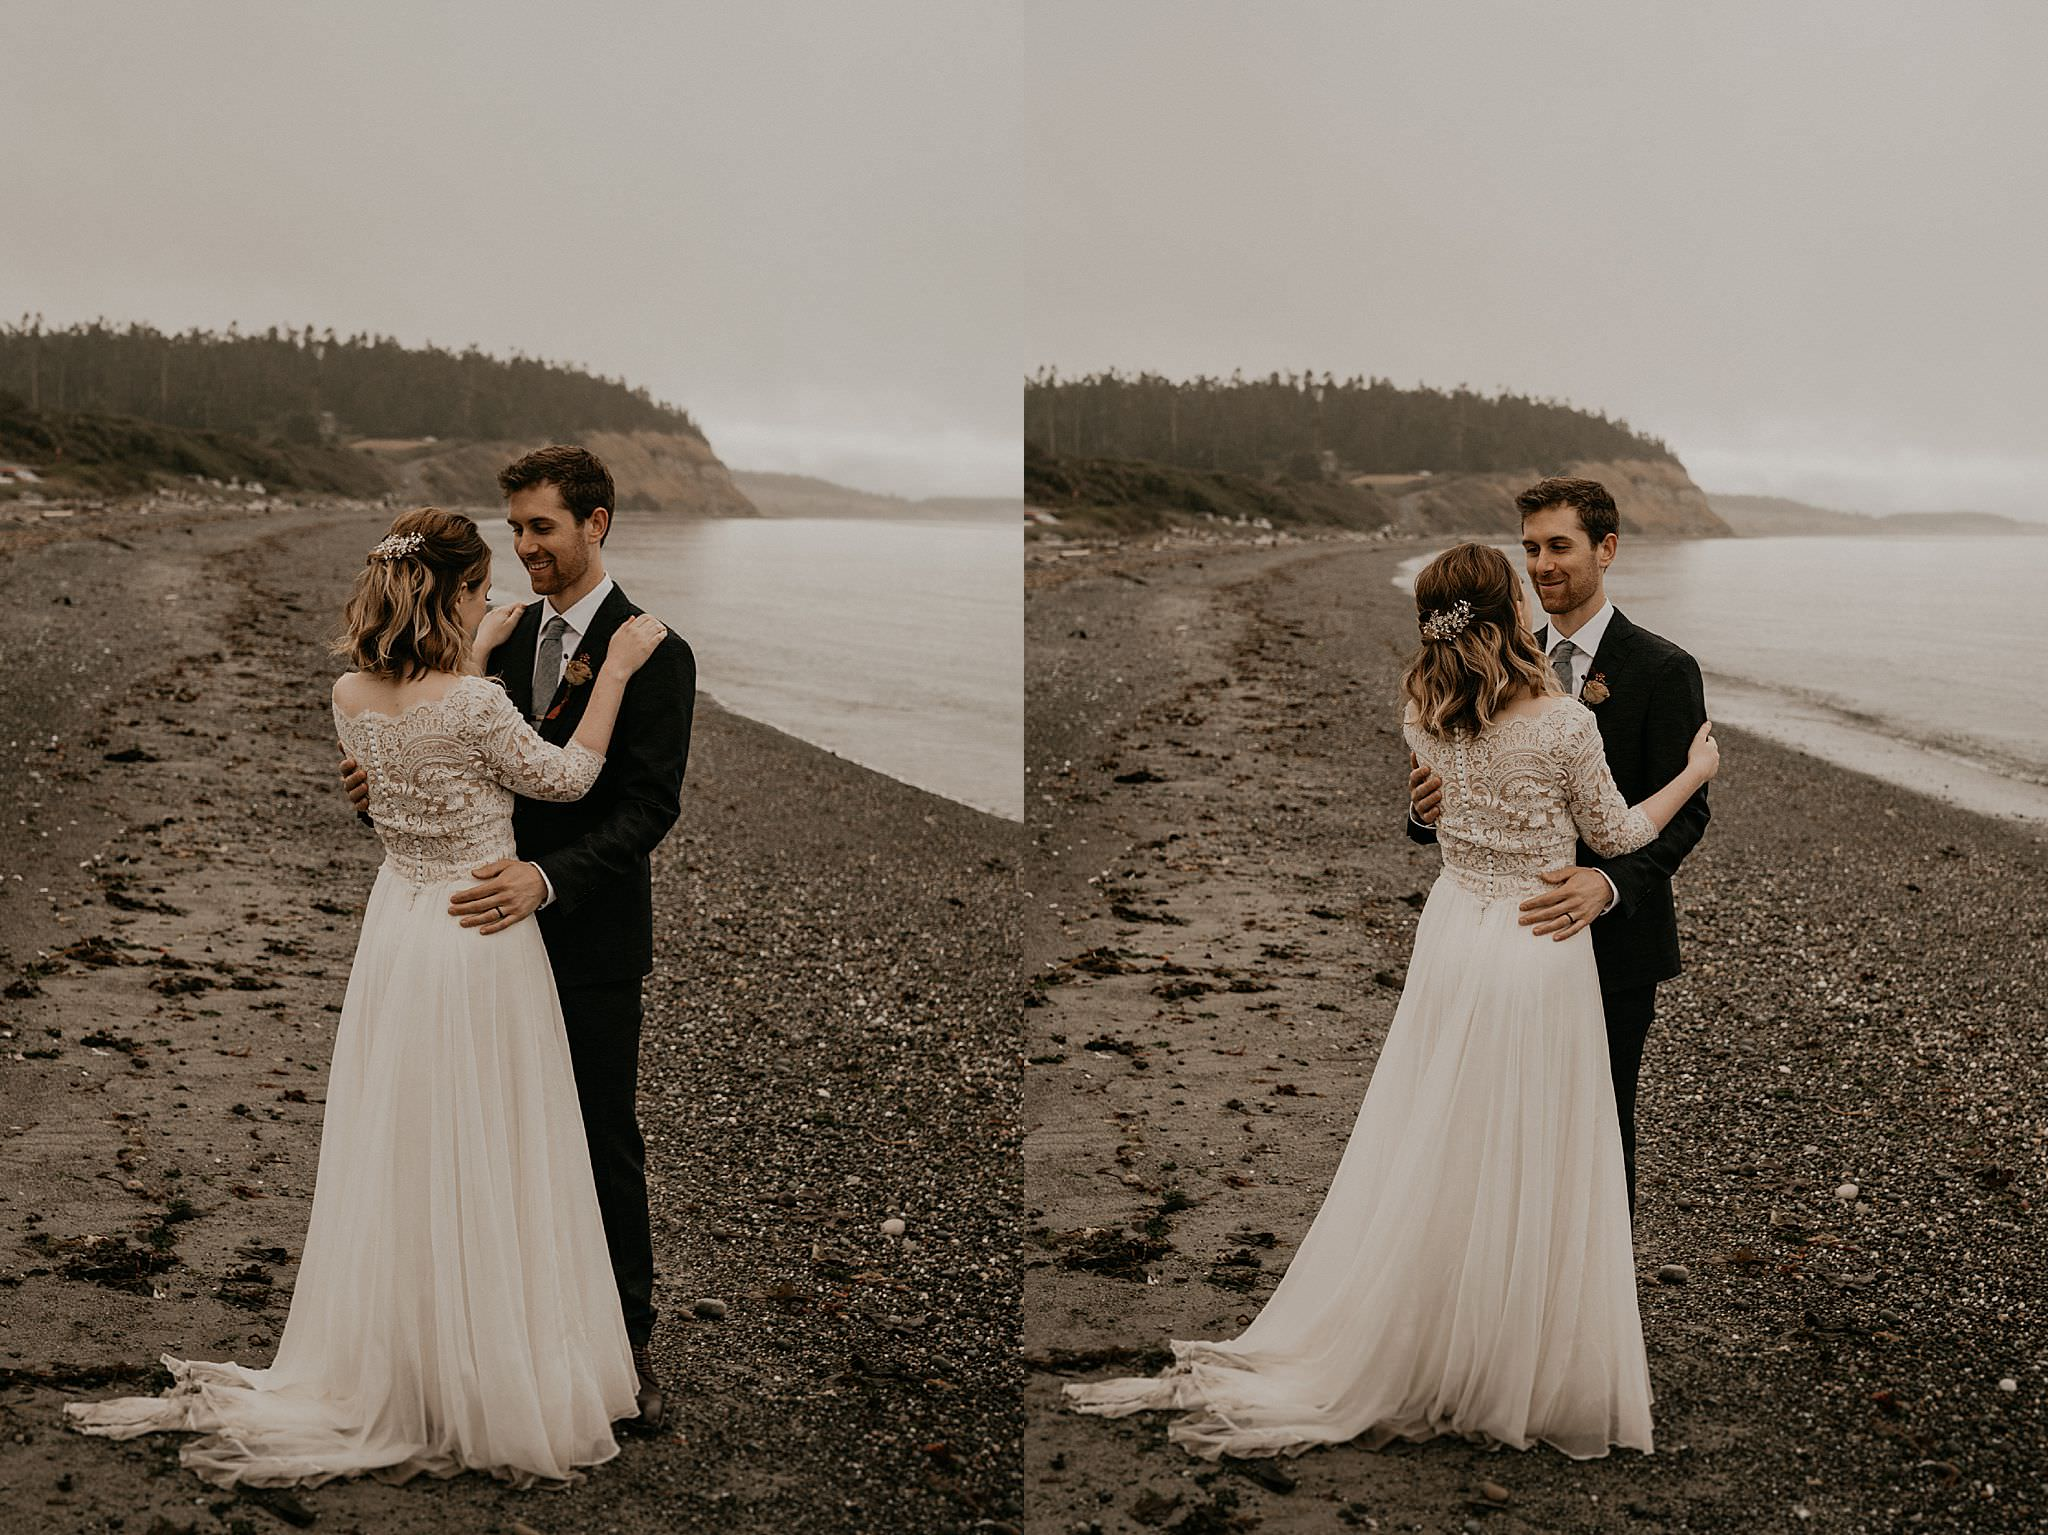 First dance on Whidbey Island for beach elopement in Washington